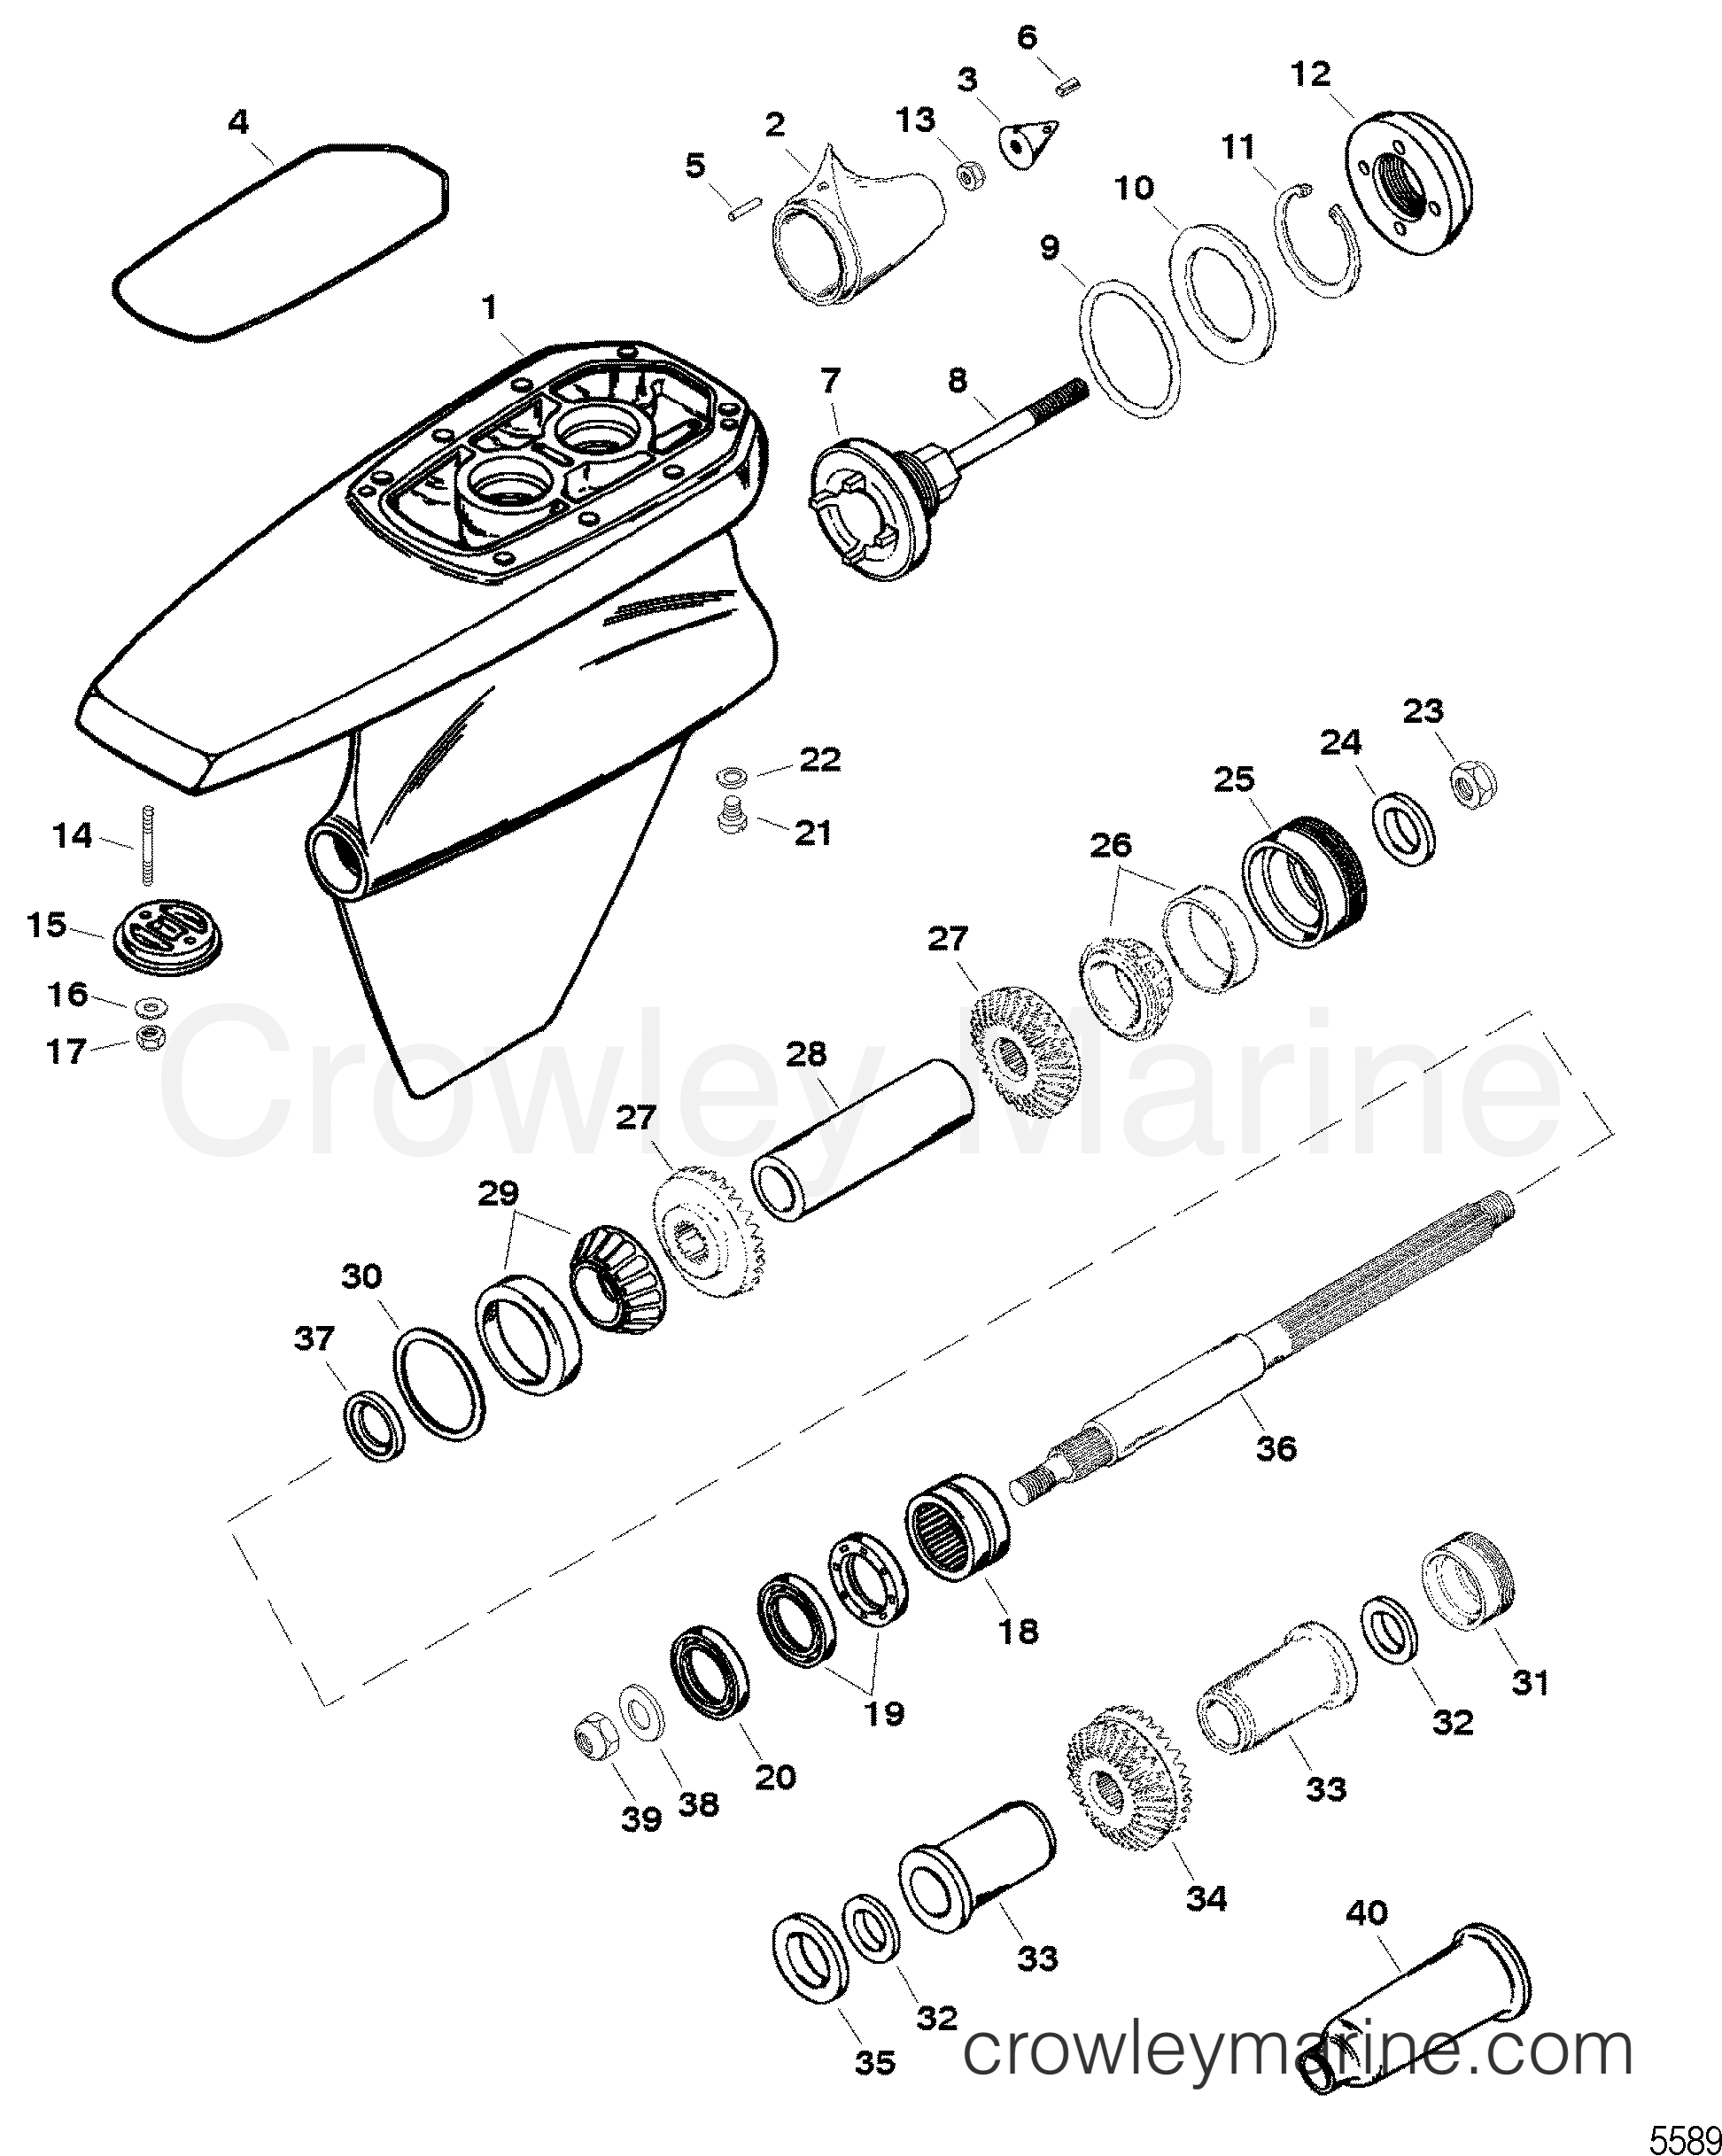 1996 Mercruiser Race Sterndrive SSM6 [1.607:1] - 5614607JH - GEAR HOUSING ASSEMBLY(SSM SIX - PROPSHAFT) section